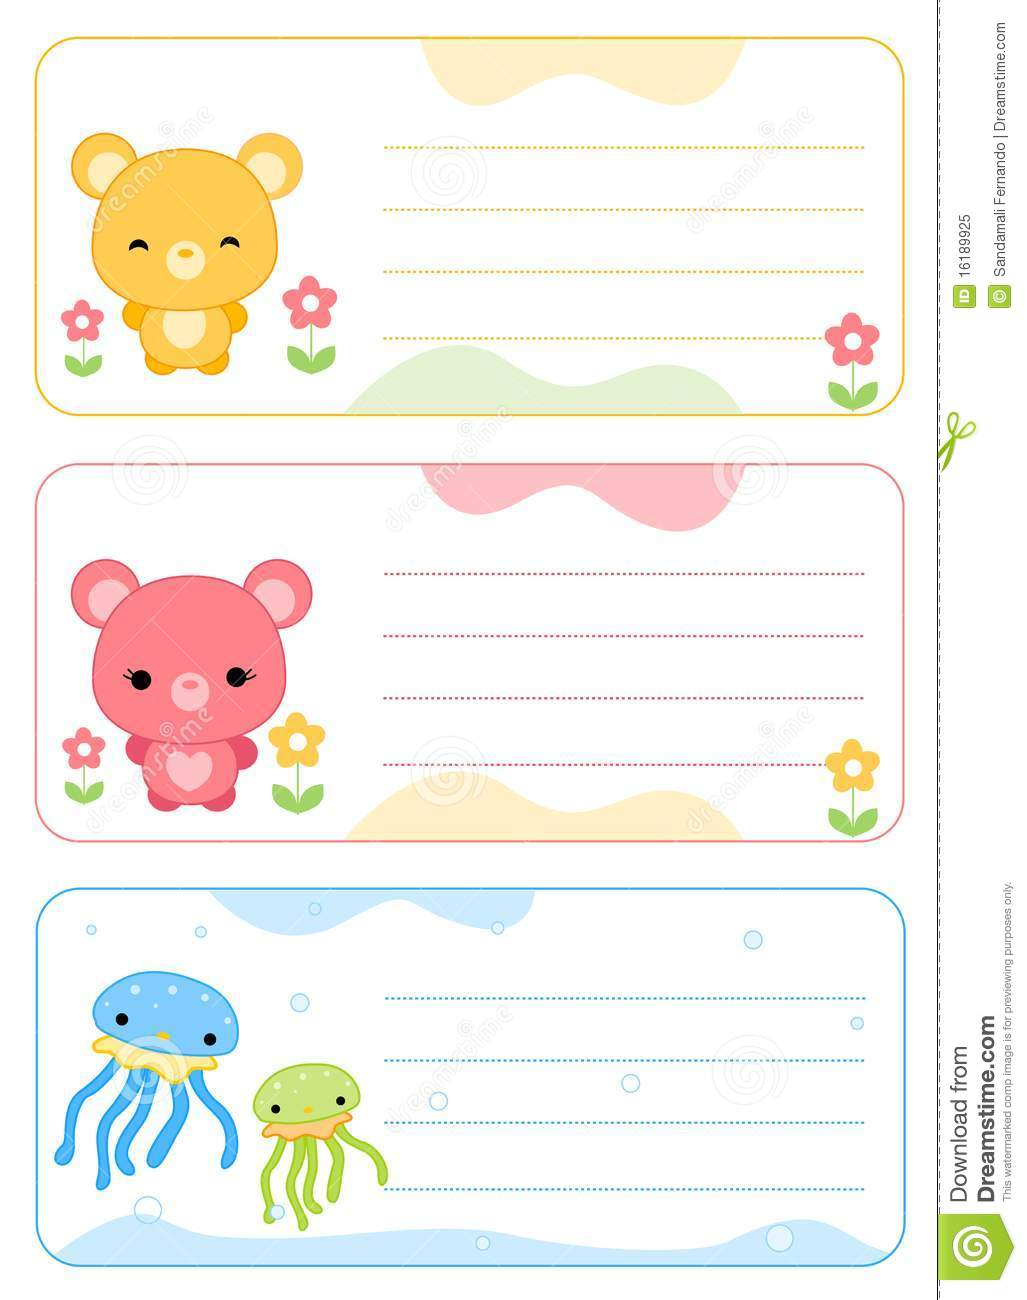 Children Name Cards Royalty Free Stock Photo - Image: 16189925